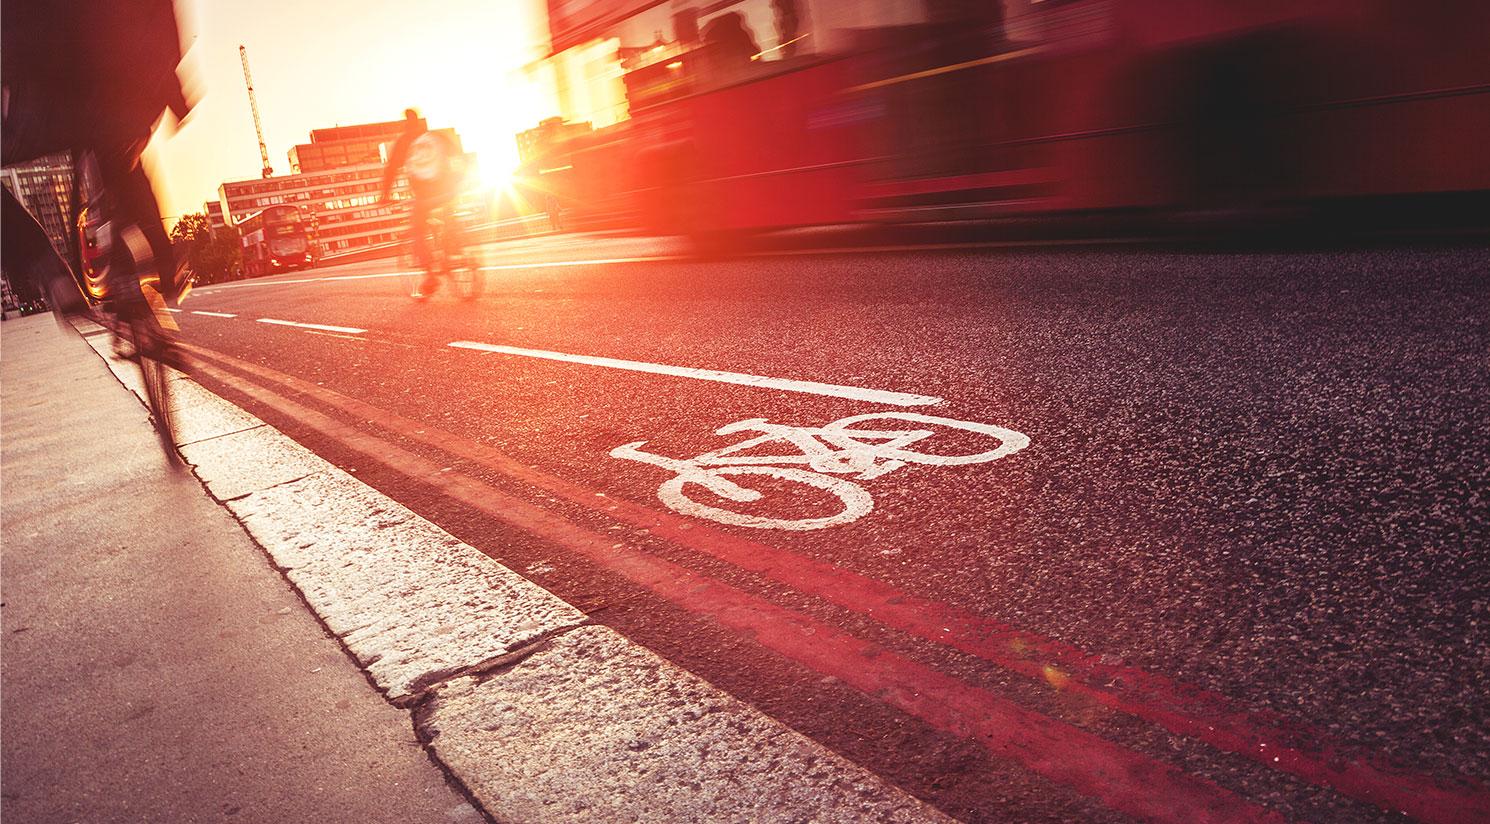 The Healthy Streets Approach: What Does This Mean for Transport Assessments?